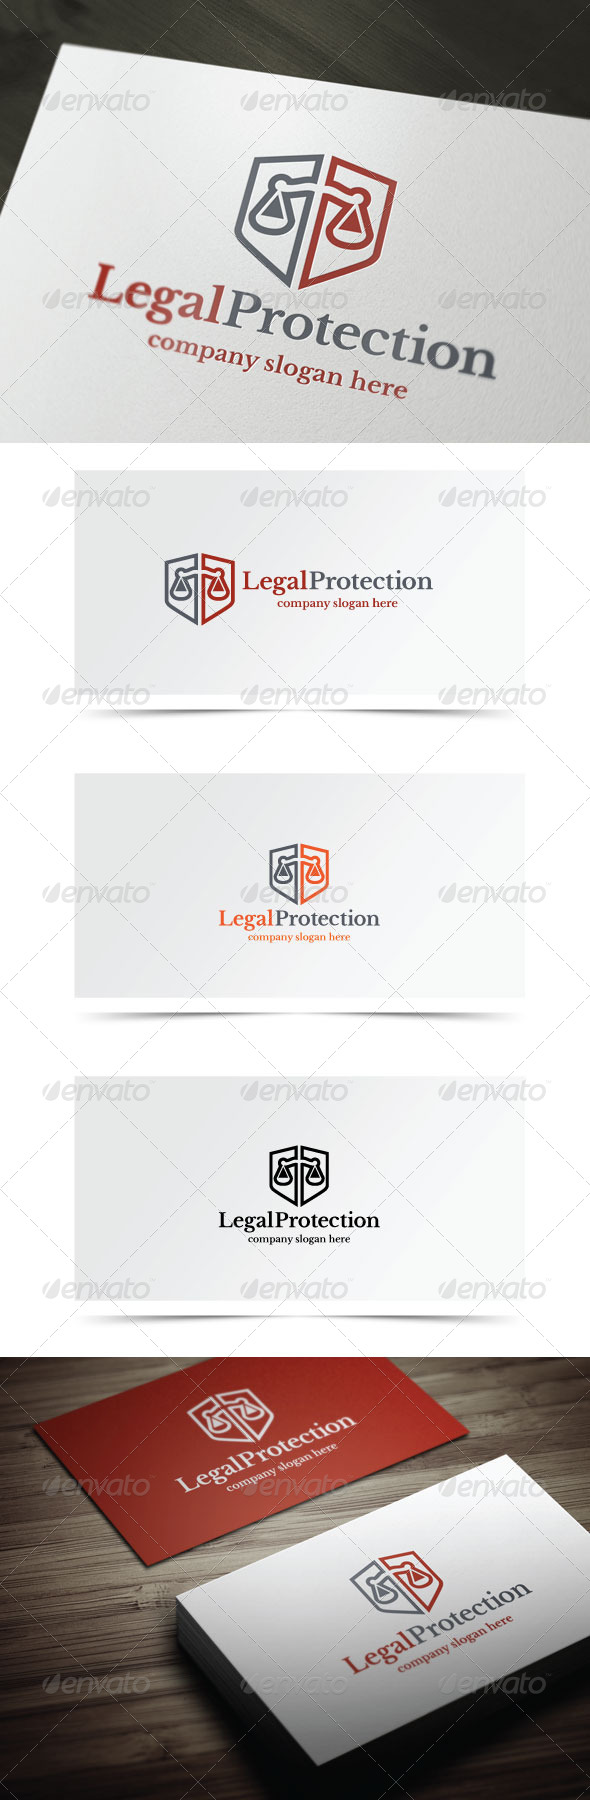 GraphicRiver Legal Protection 6906053